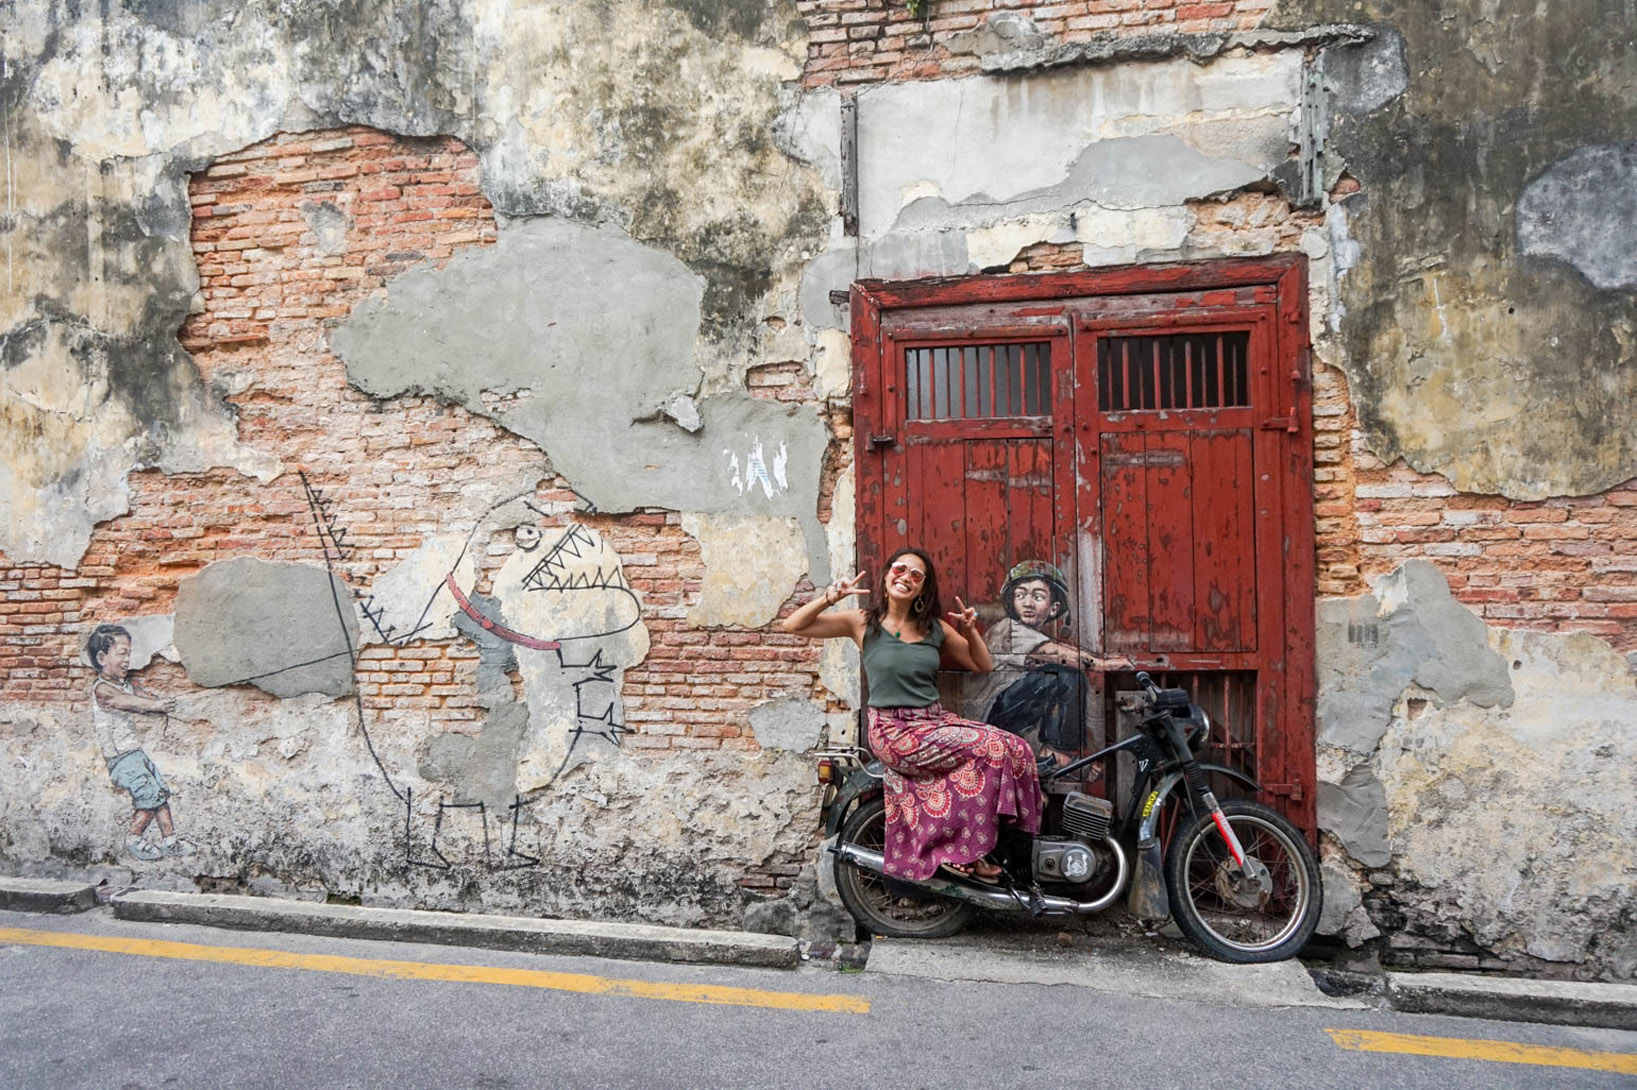 boy on a motorcycle penang street art georgetown